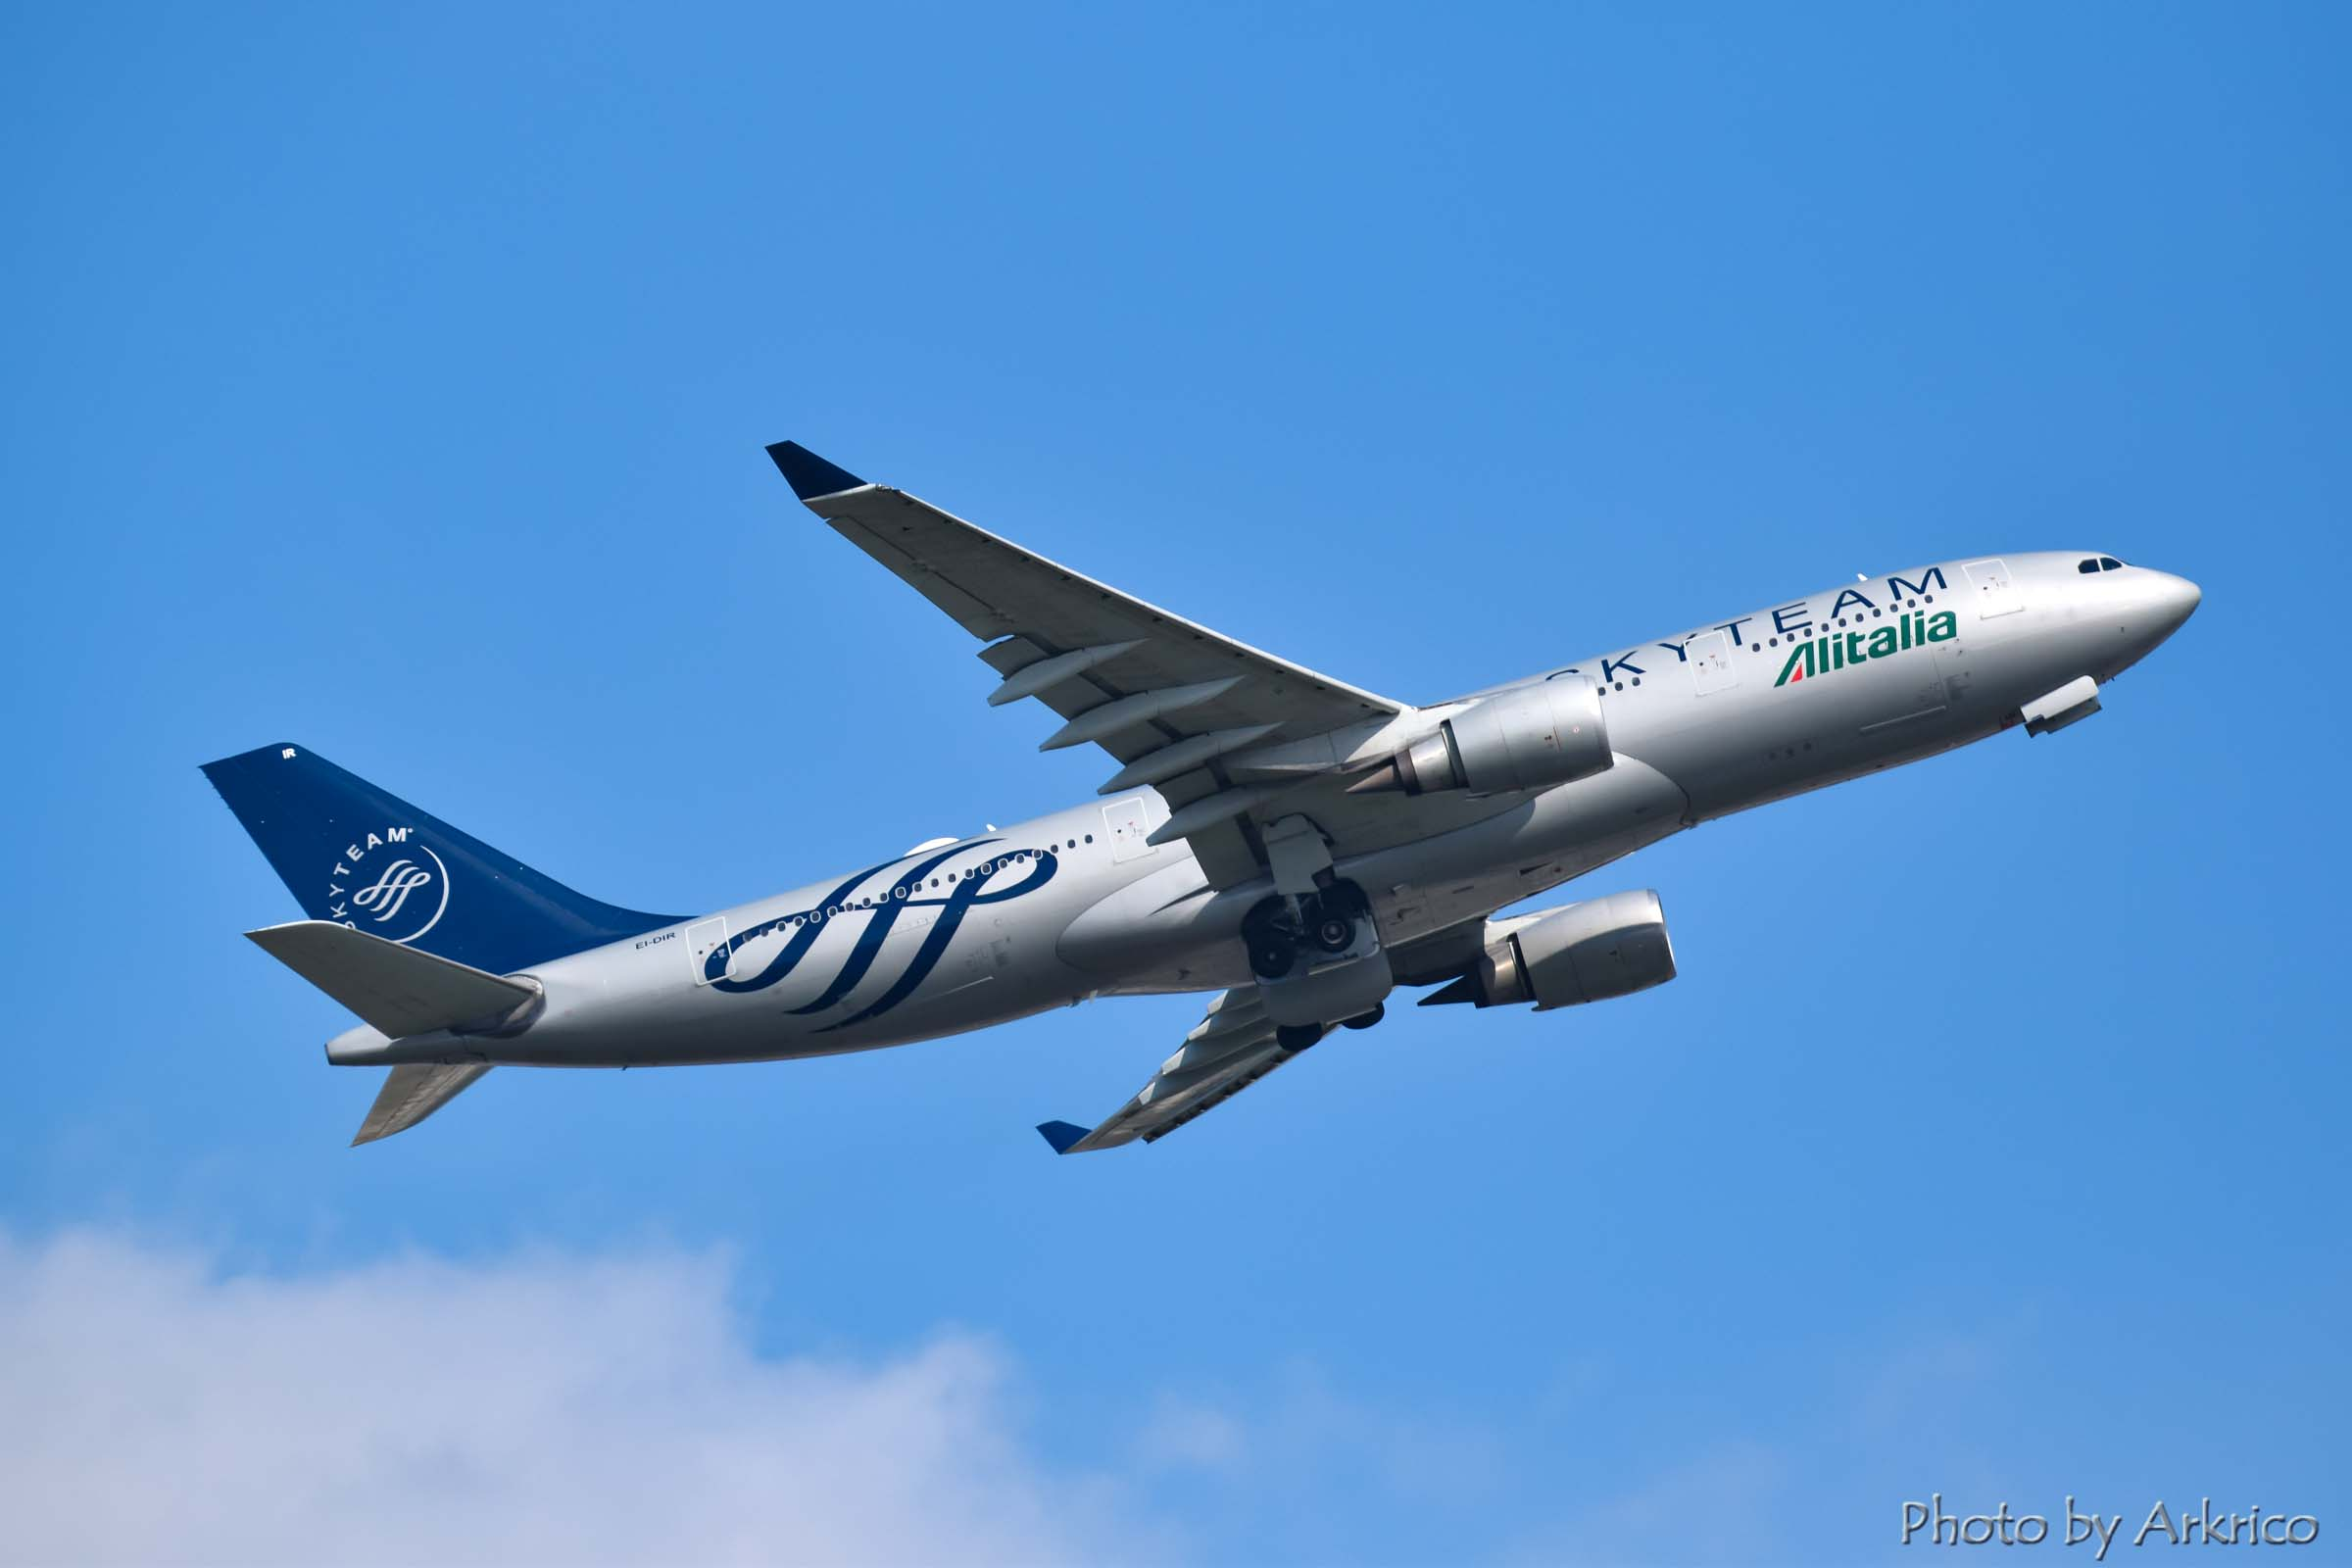 Skyteam liveried Alitalia's A330-200.